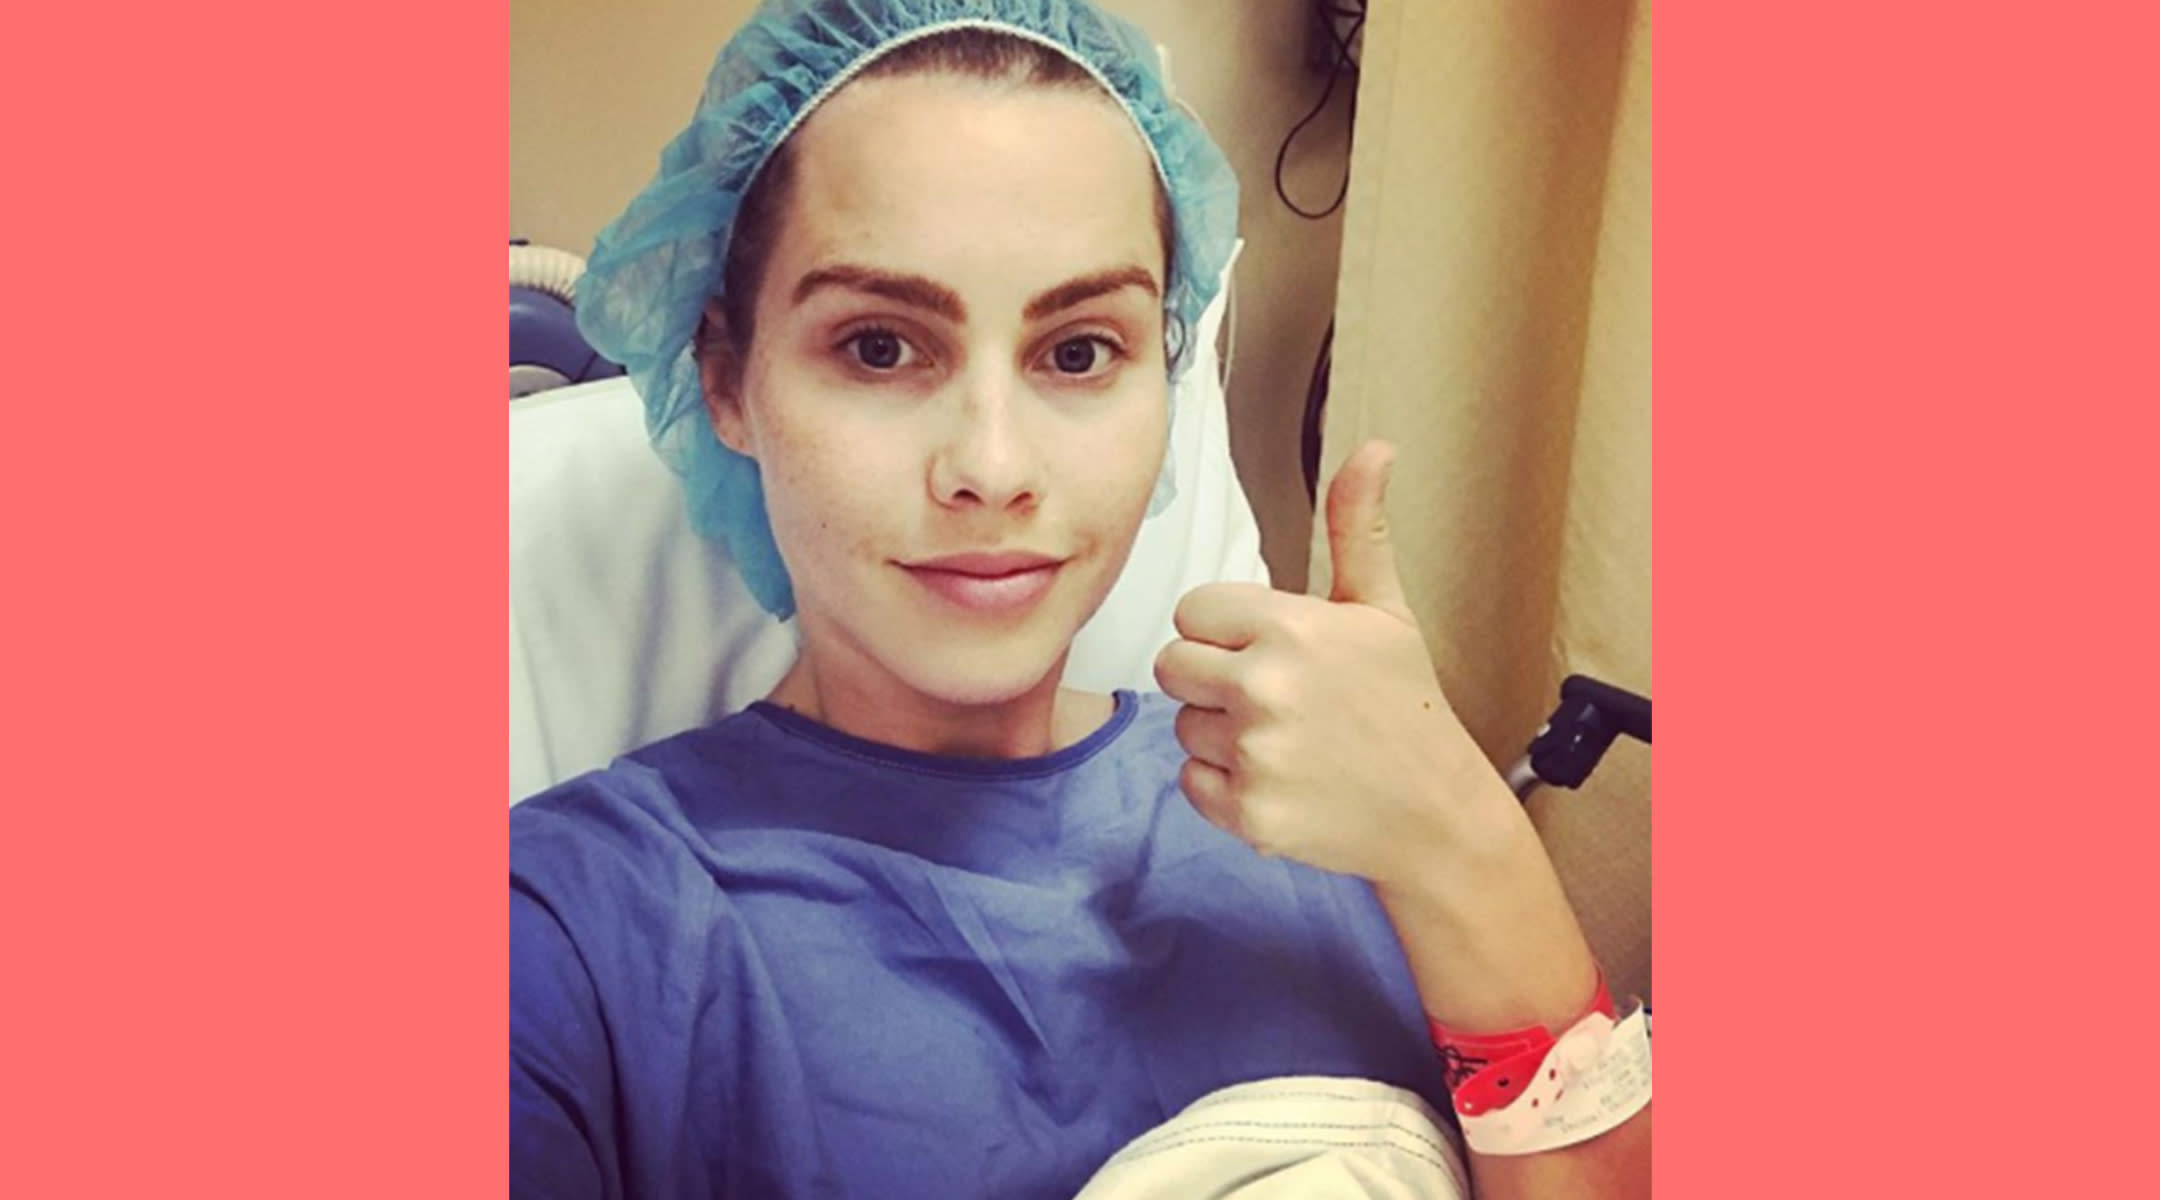 Claire Holt in hospital garb giving thumbs up